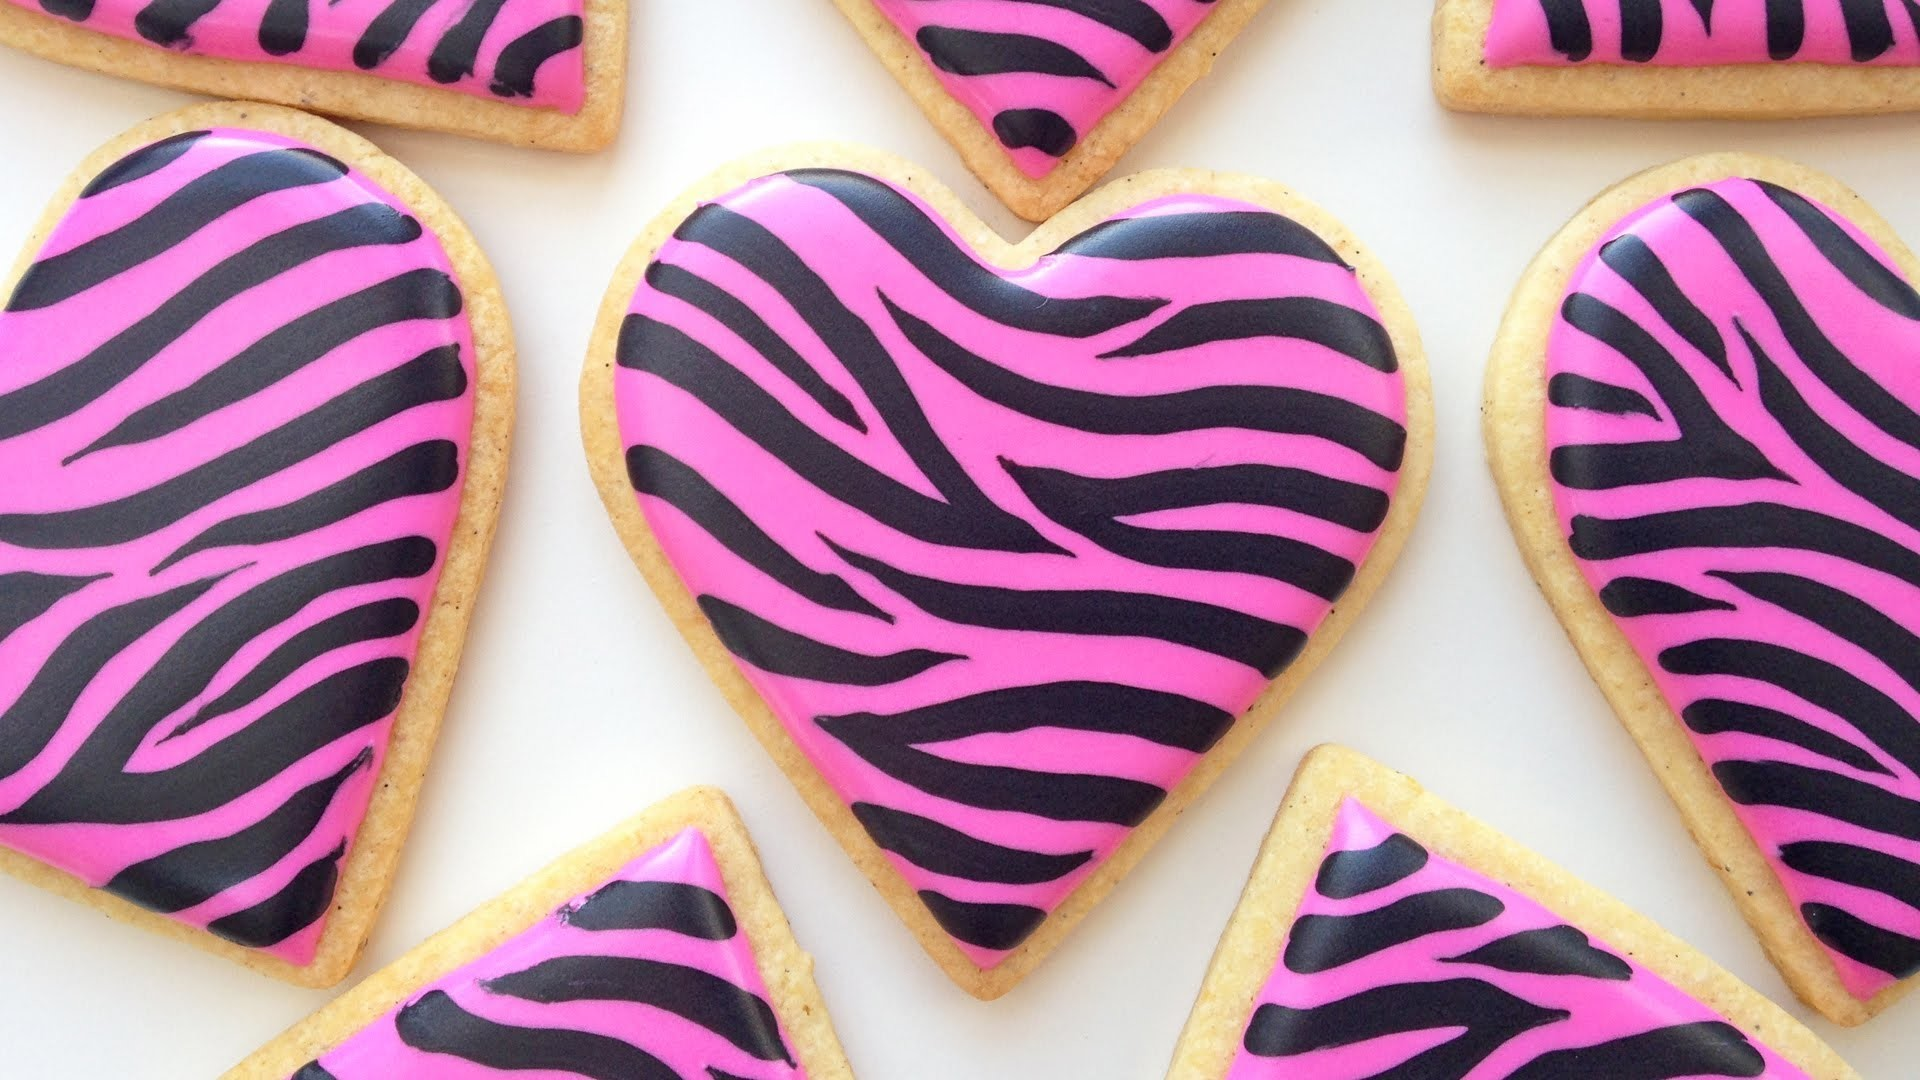 How To Decorate Zebra Print Cookies!